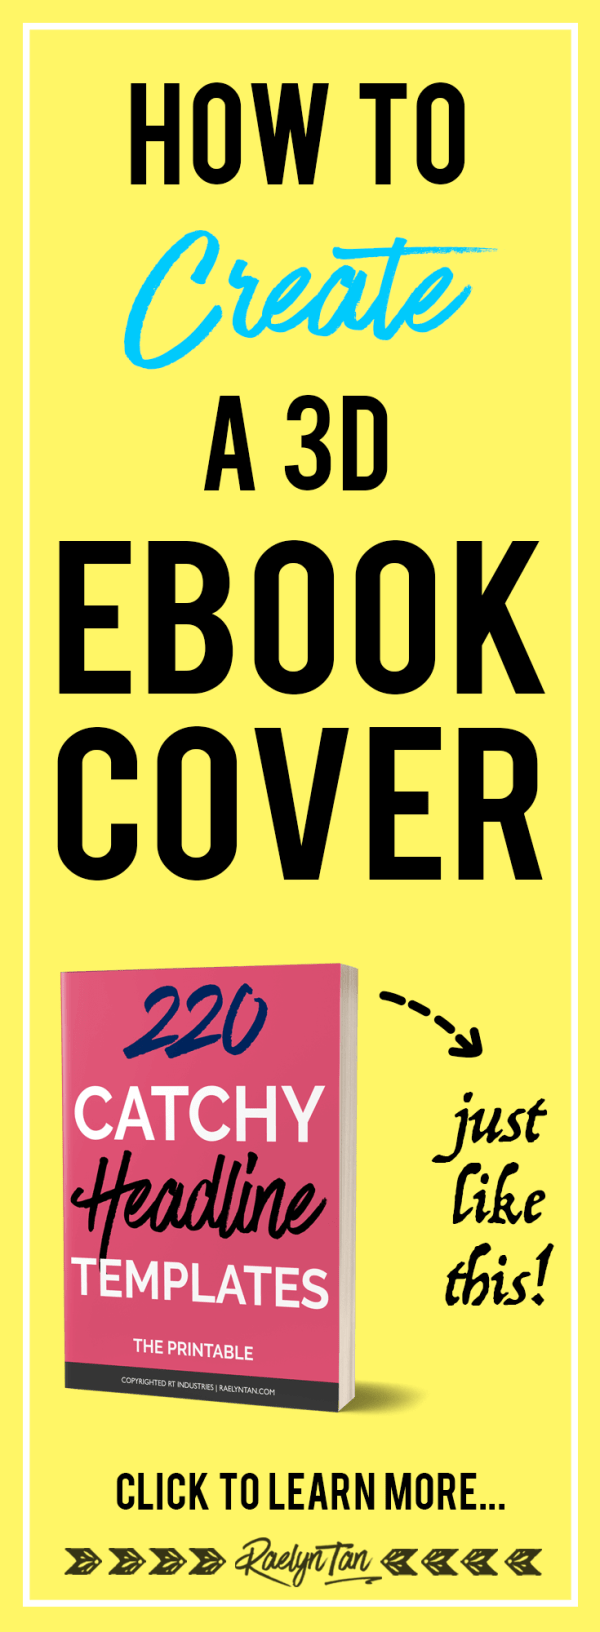 How to Make a 3D Ebook Cover in 10 Minutes (With Photoshop)